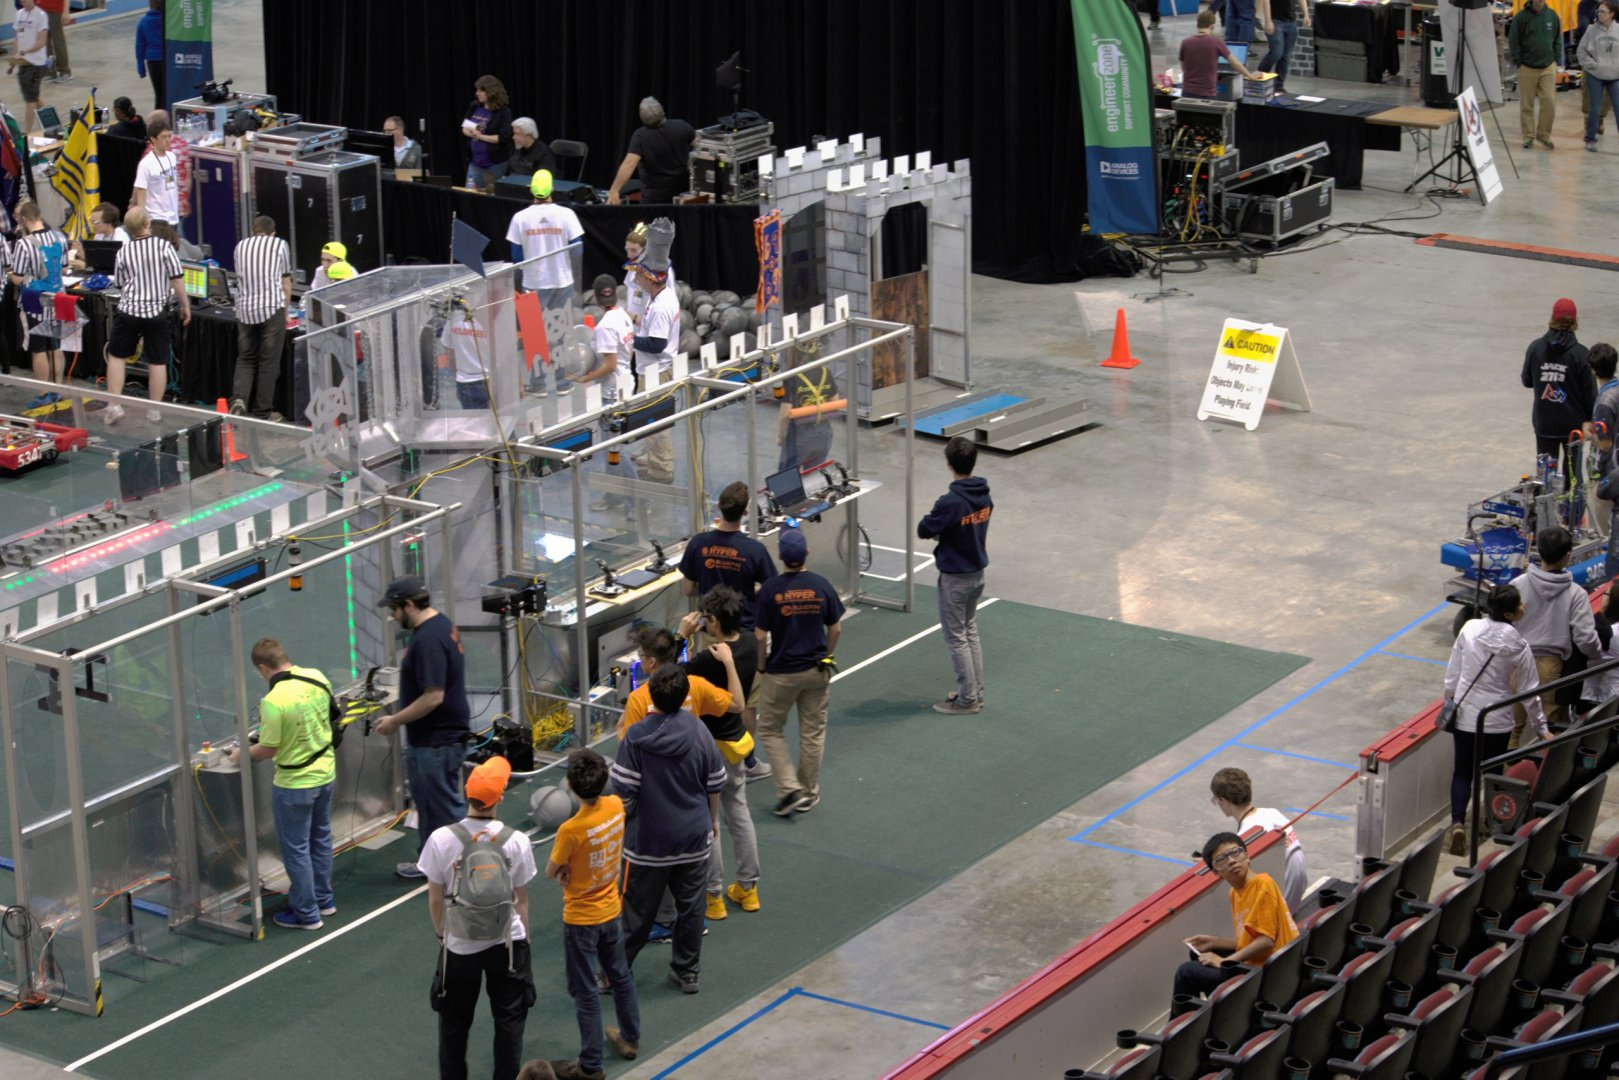 073.Boston FIRST Robotics Competition 04-03-2016.jpg